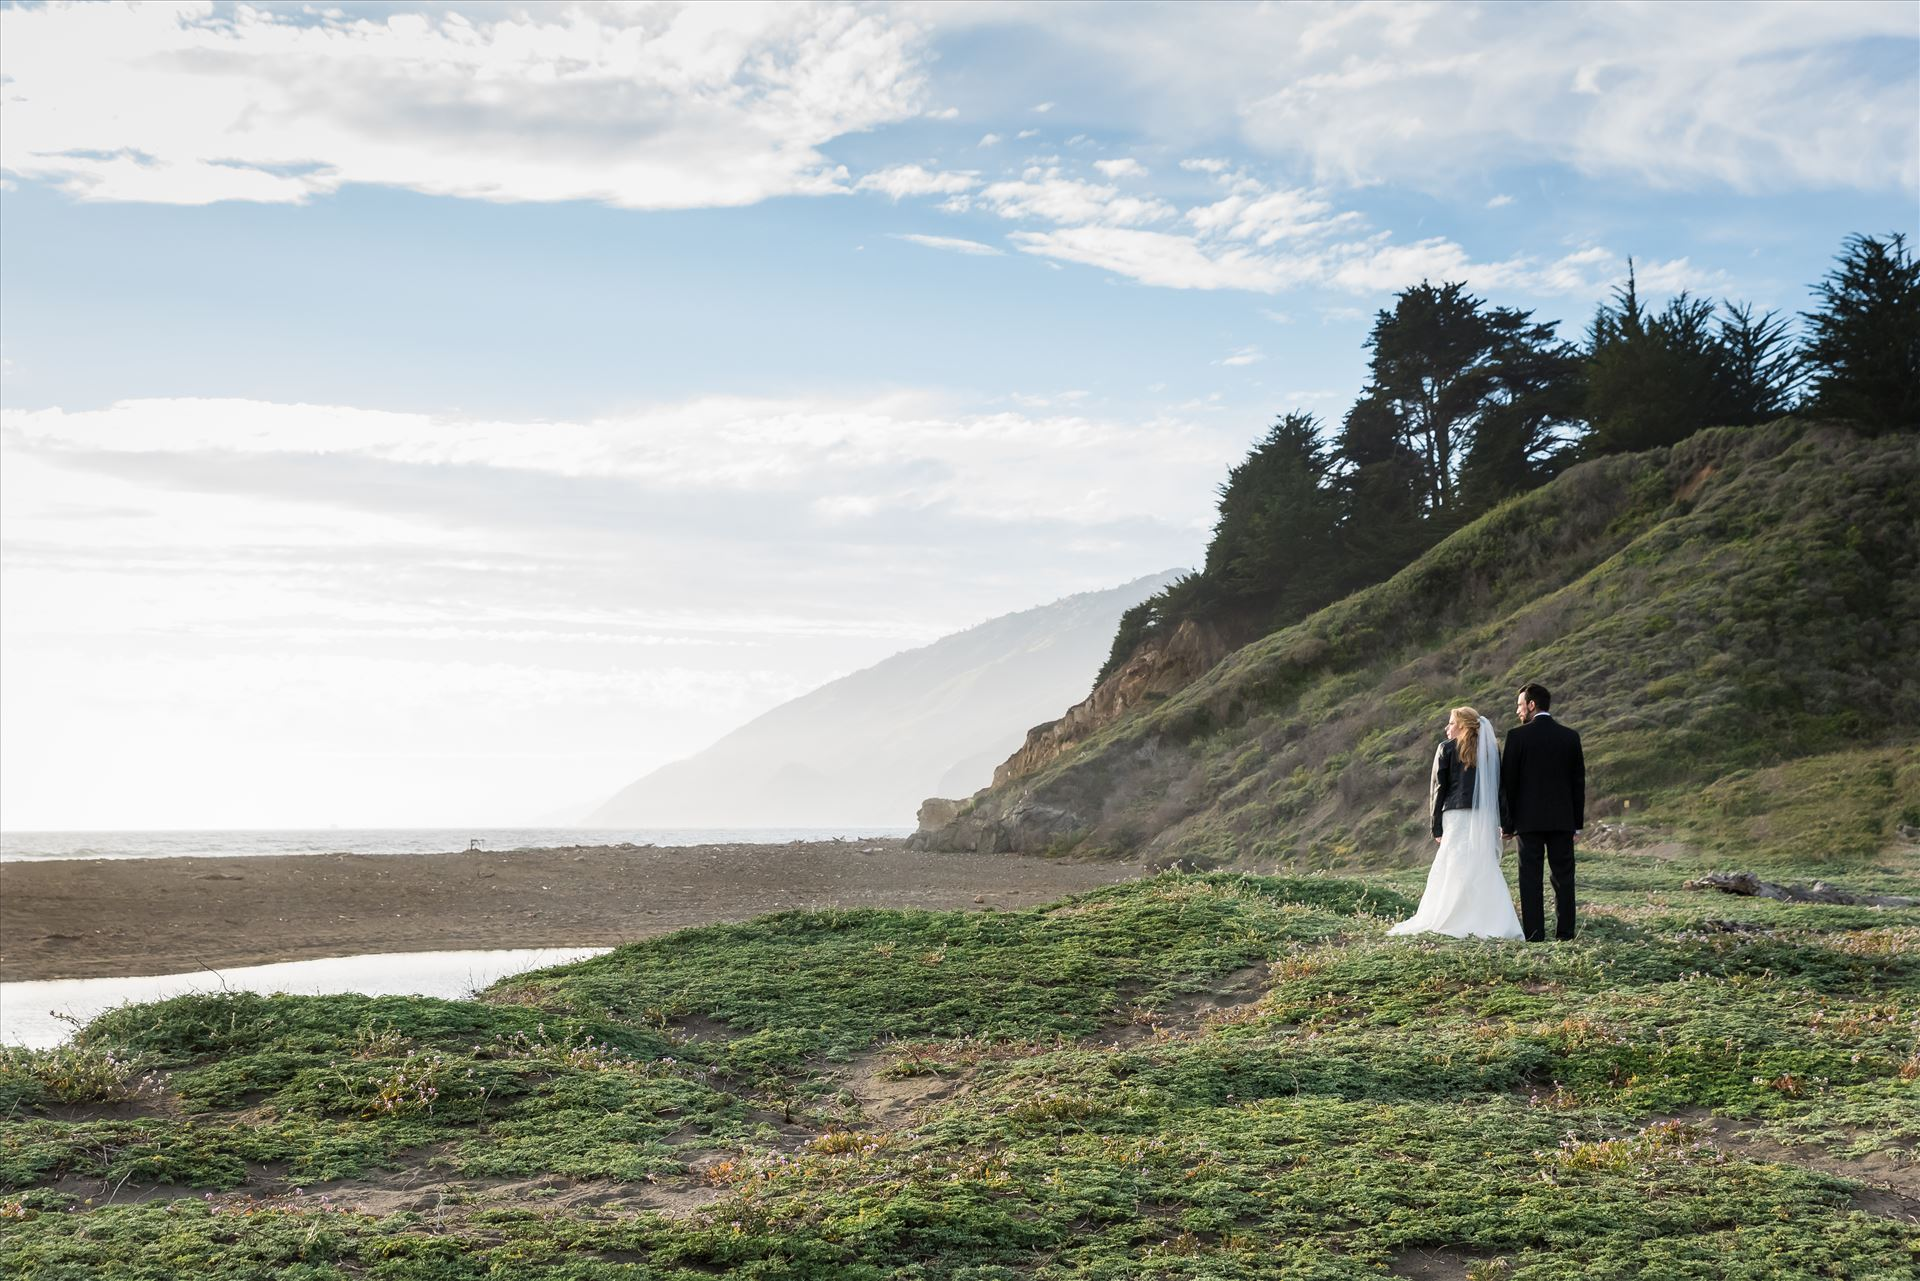 Adele and Jason 31 Ragged Point Inn Wedding Elopement photography by Mirror's Edge Photography in San Simeon Cambria California. Bride and Groom at Ragged Point beach. Big Sur Wedding Photography by Sarah Williams